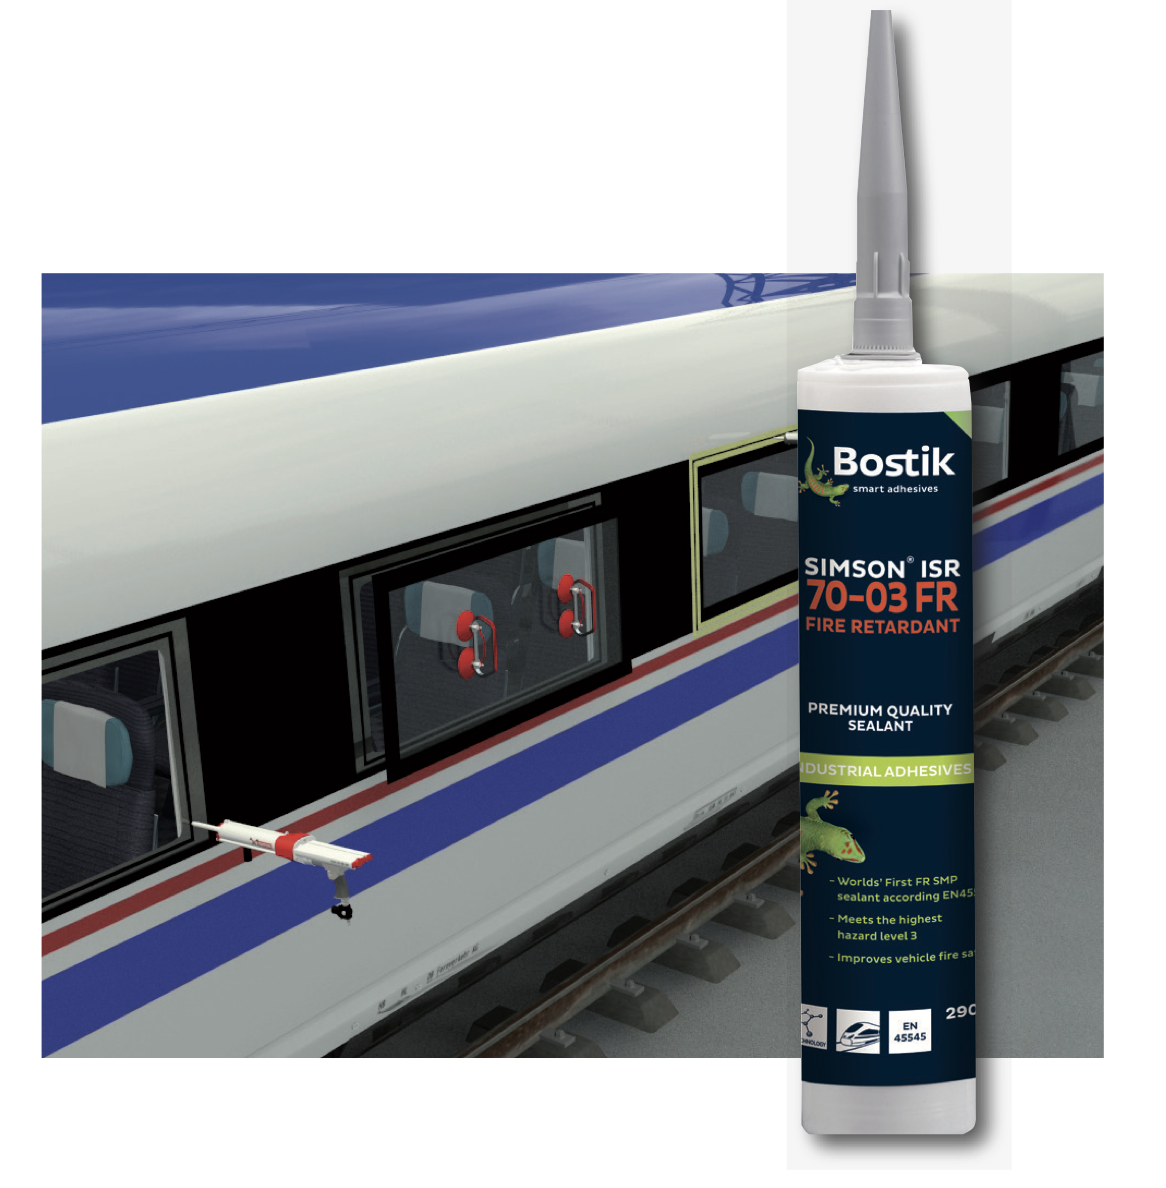 SIMSON ISR 70-03, the world's first fire retardant SMP sealant